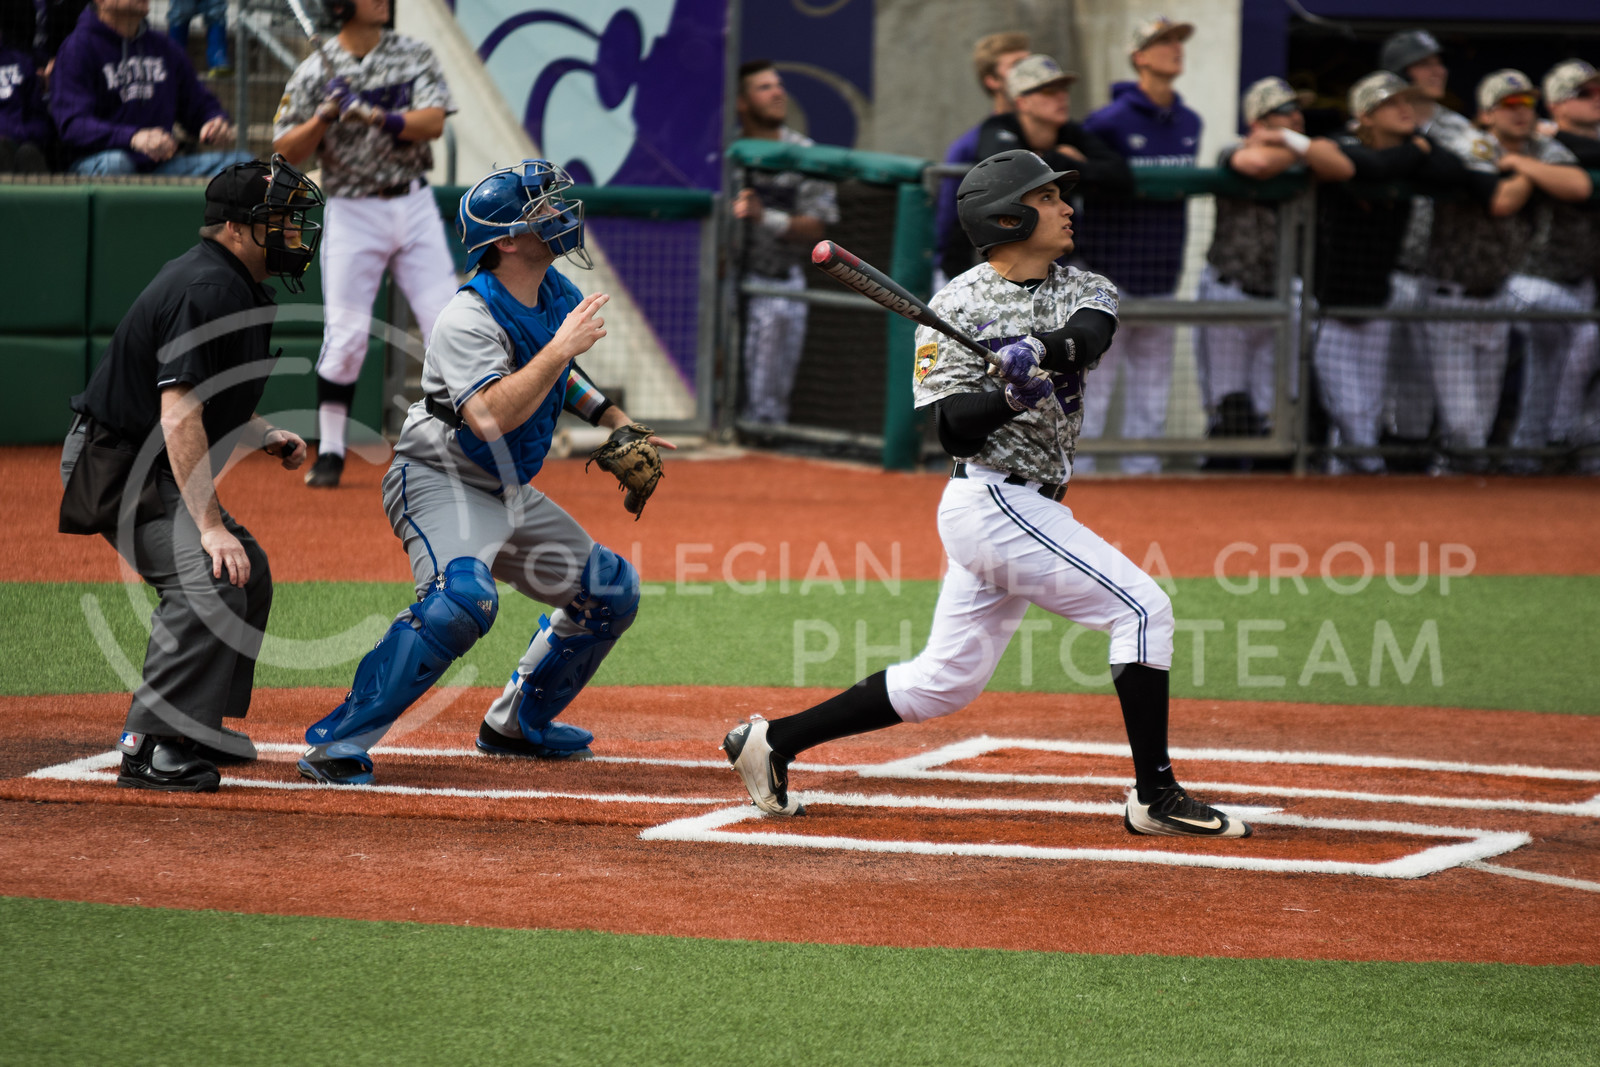 Sophomore catcher Josh Rolette hits the ball while at bat during the K-State baseball game against Eastern Illisnois University at Tointon Family Stadium on Mar. 5, 2017. (John Benfer | The Collegian)